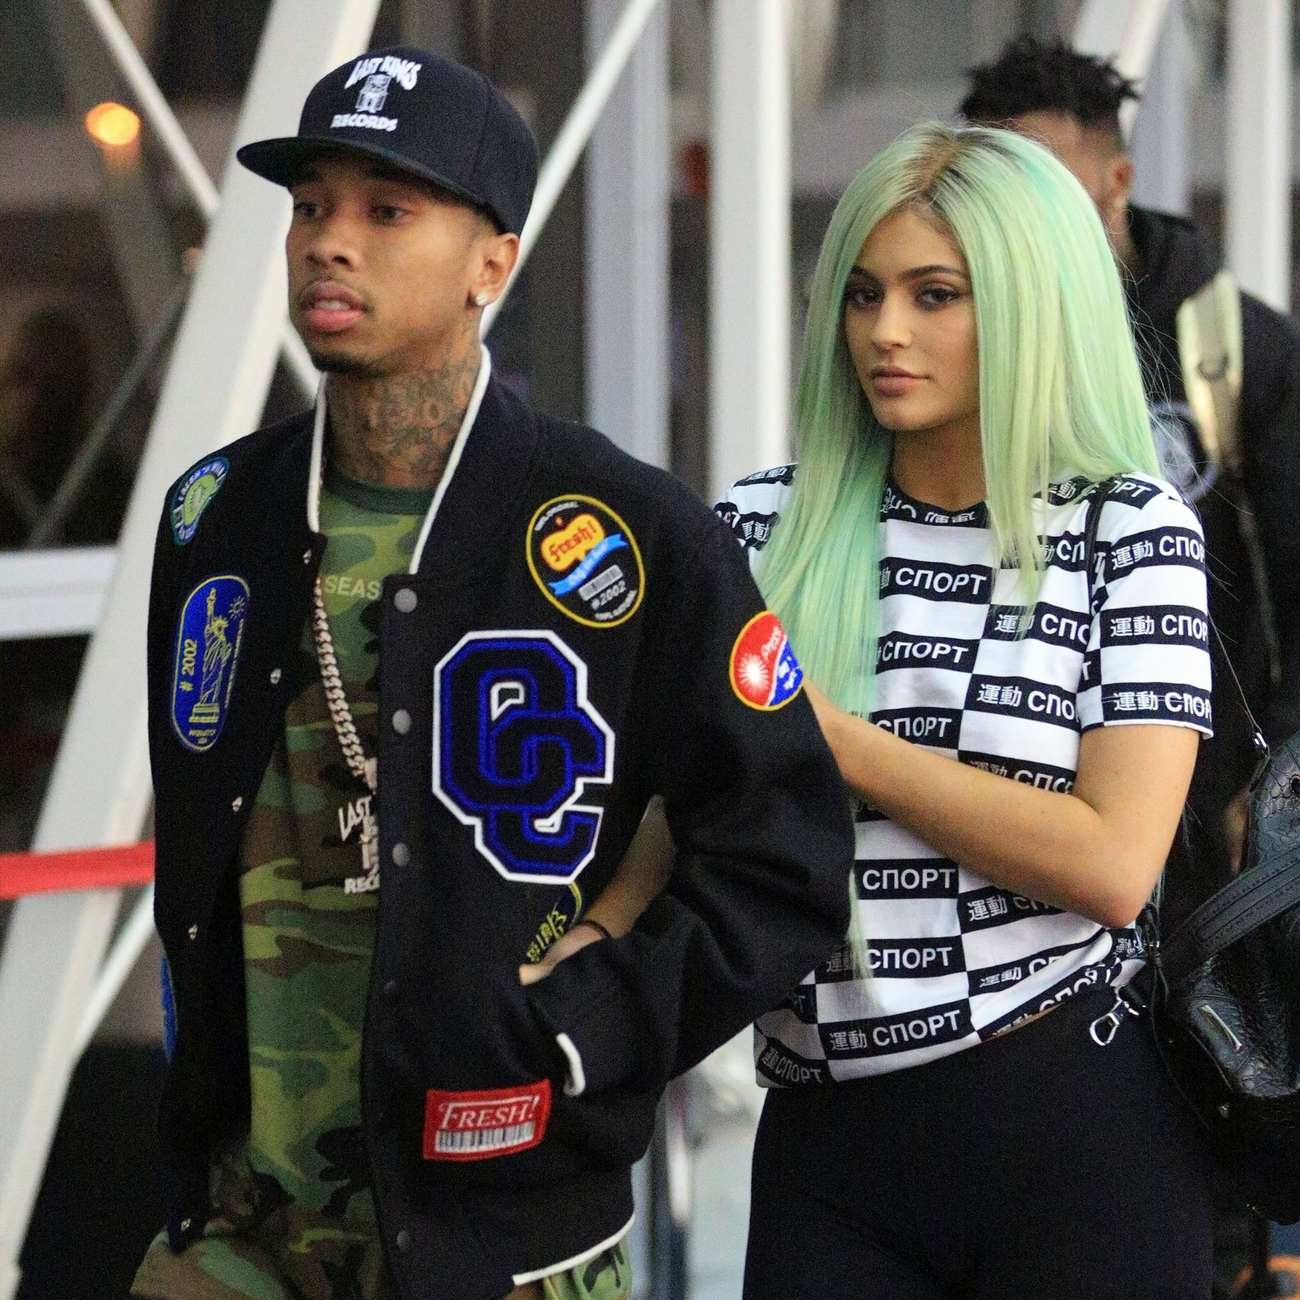 Kylie Jenner and Tyga Arrive at LAX Airport-3